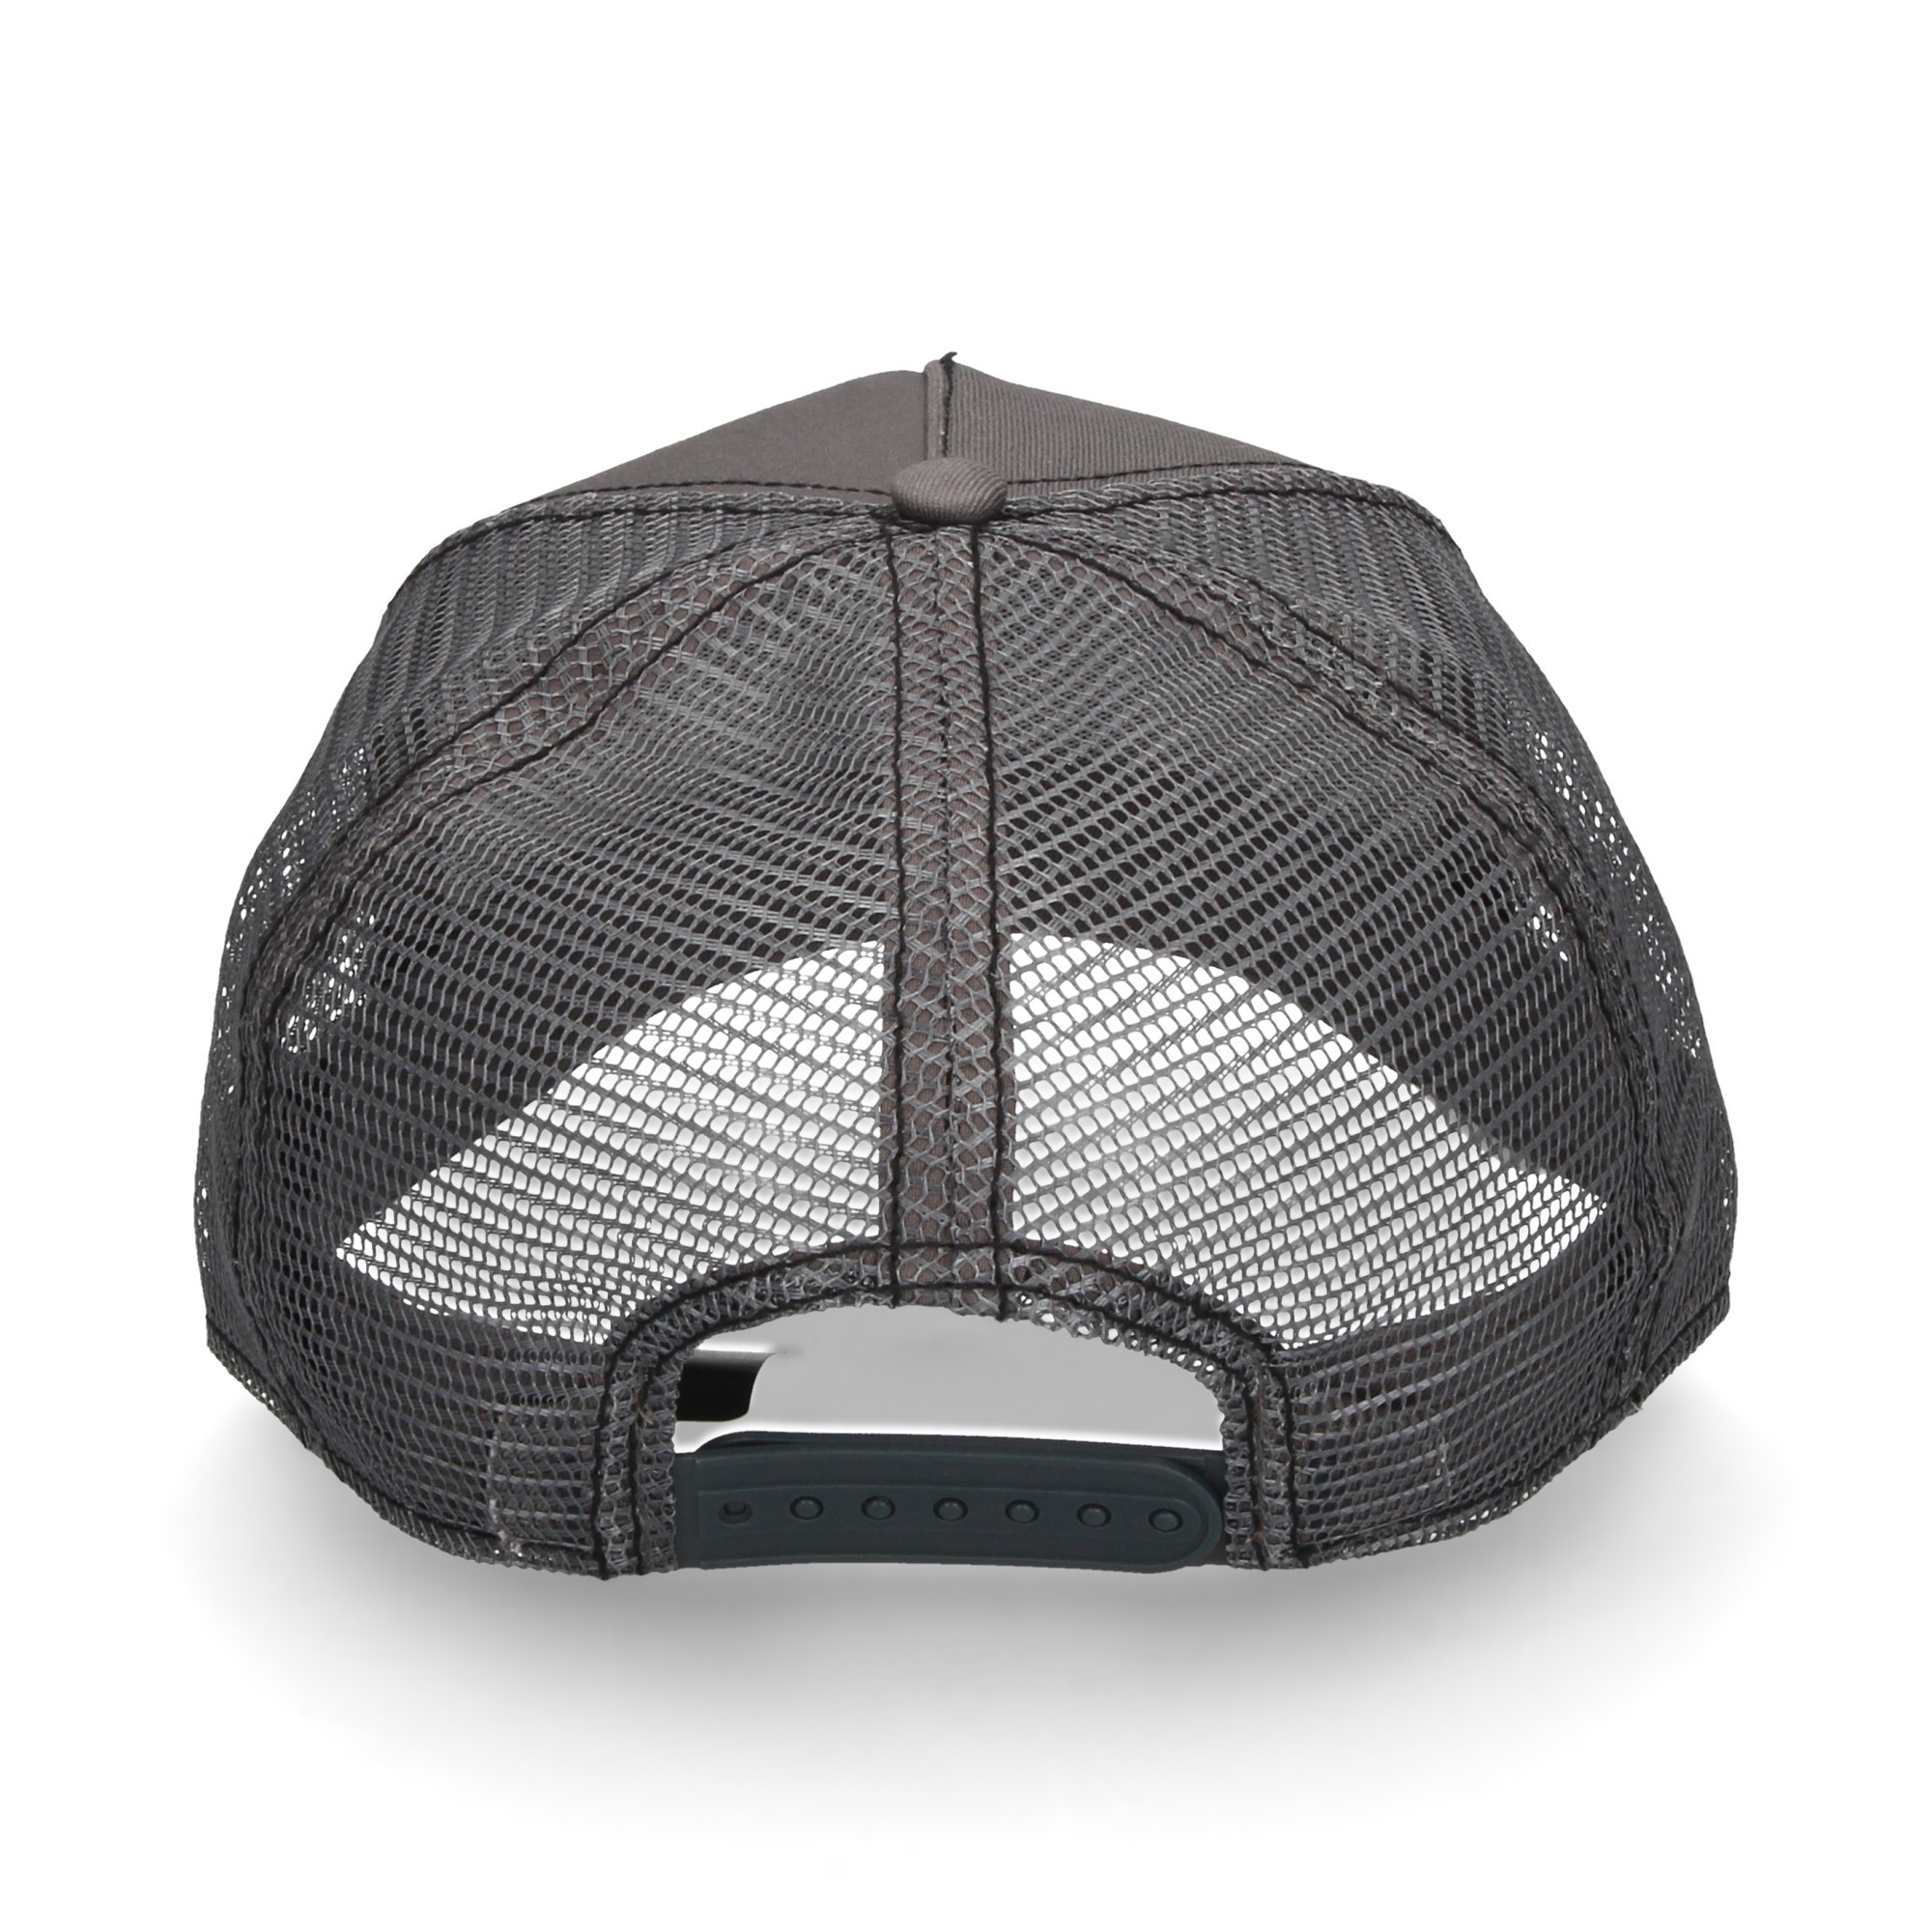 6f40bfd0f92 GOORIN BROS Caps and visors 101-9987 GRY GREY